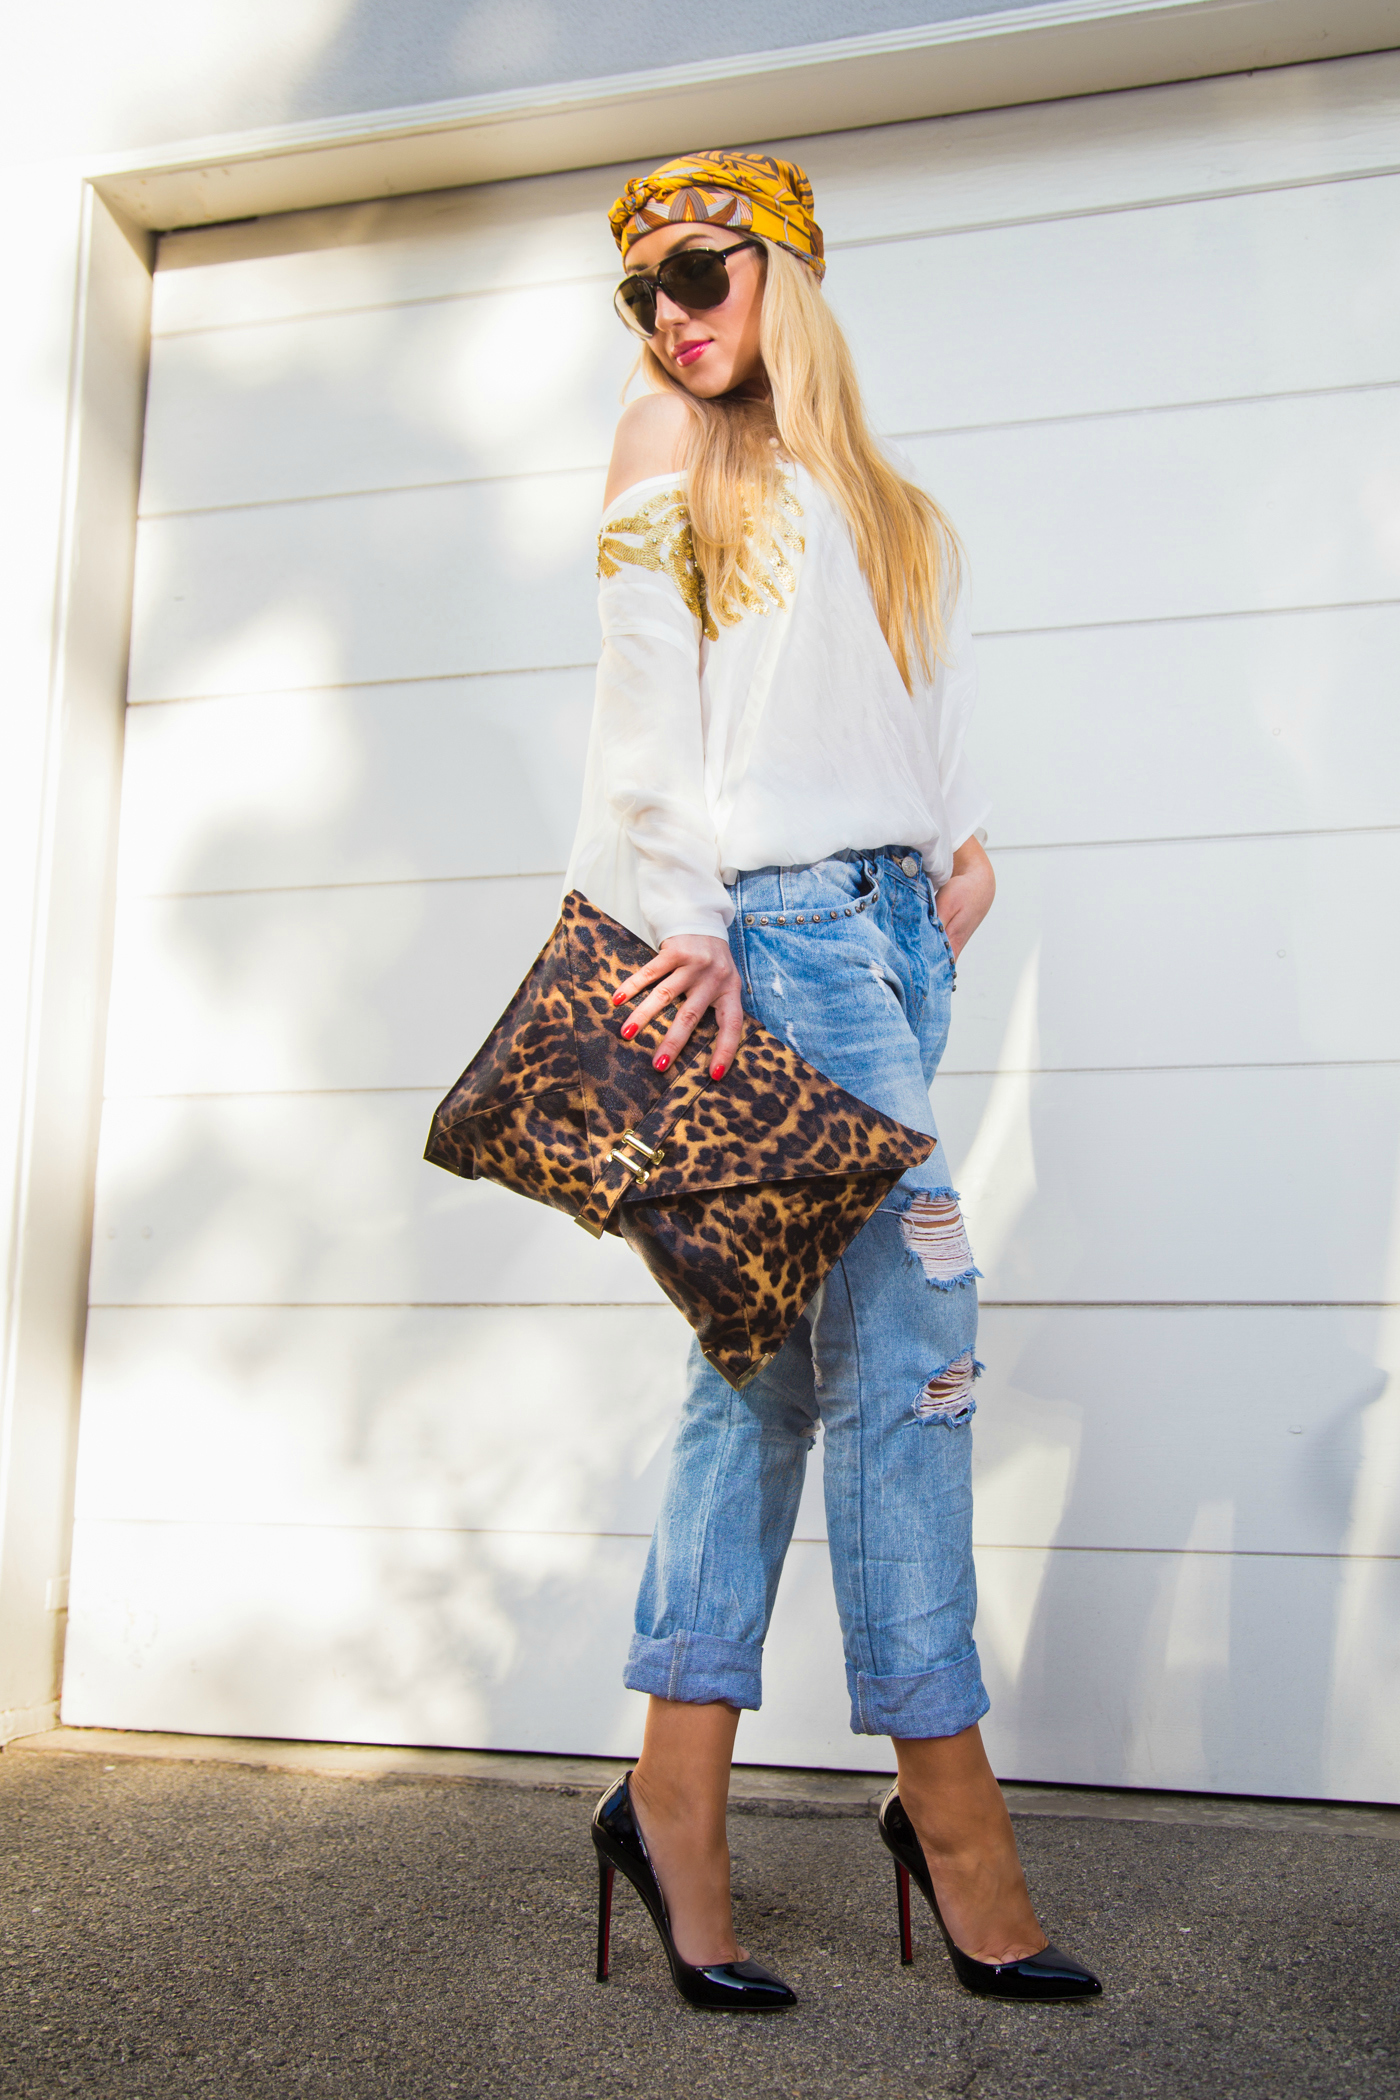 christian louboutin pigalle, ripped boyfriend jeans,zara jeans, leopard and jeans,leopard print bag,animal print bag